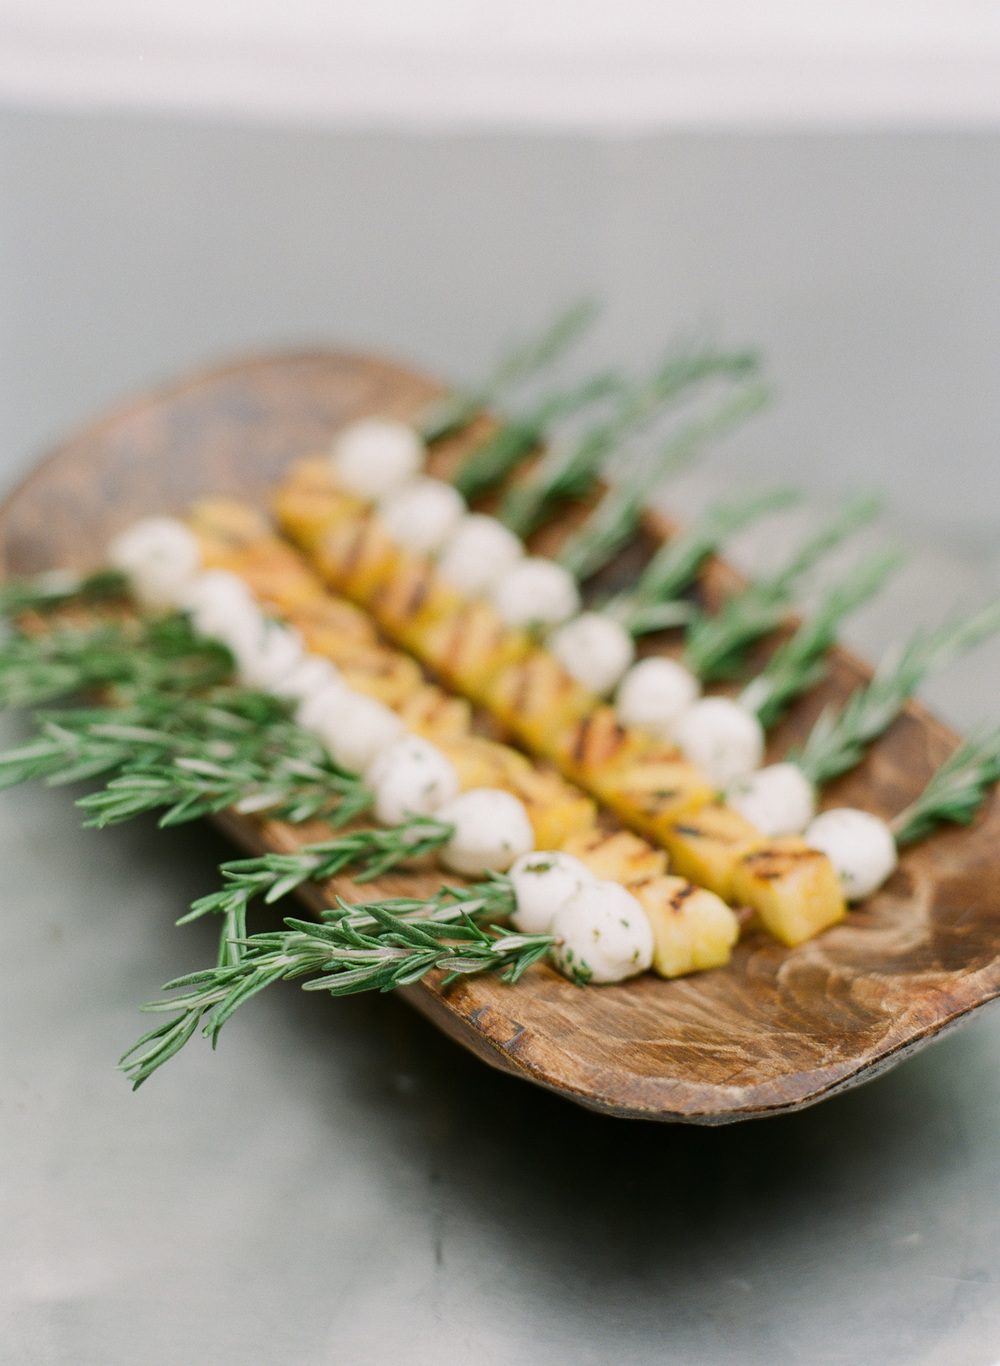 Grilled Pineapple and Fresh Mozzarella, Rosemary Spear